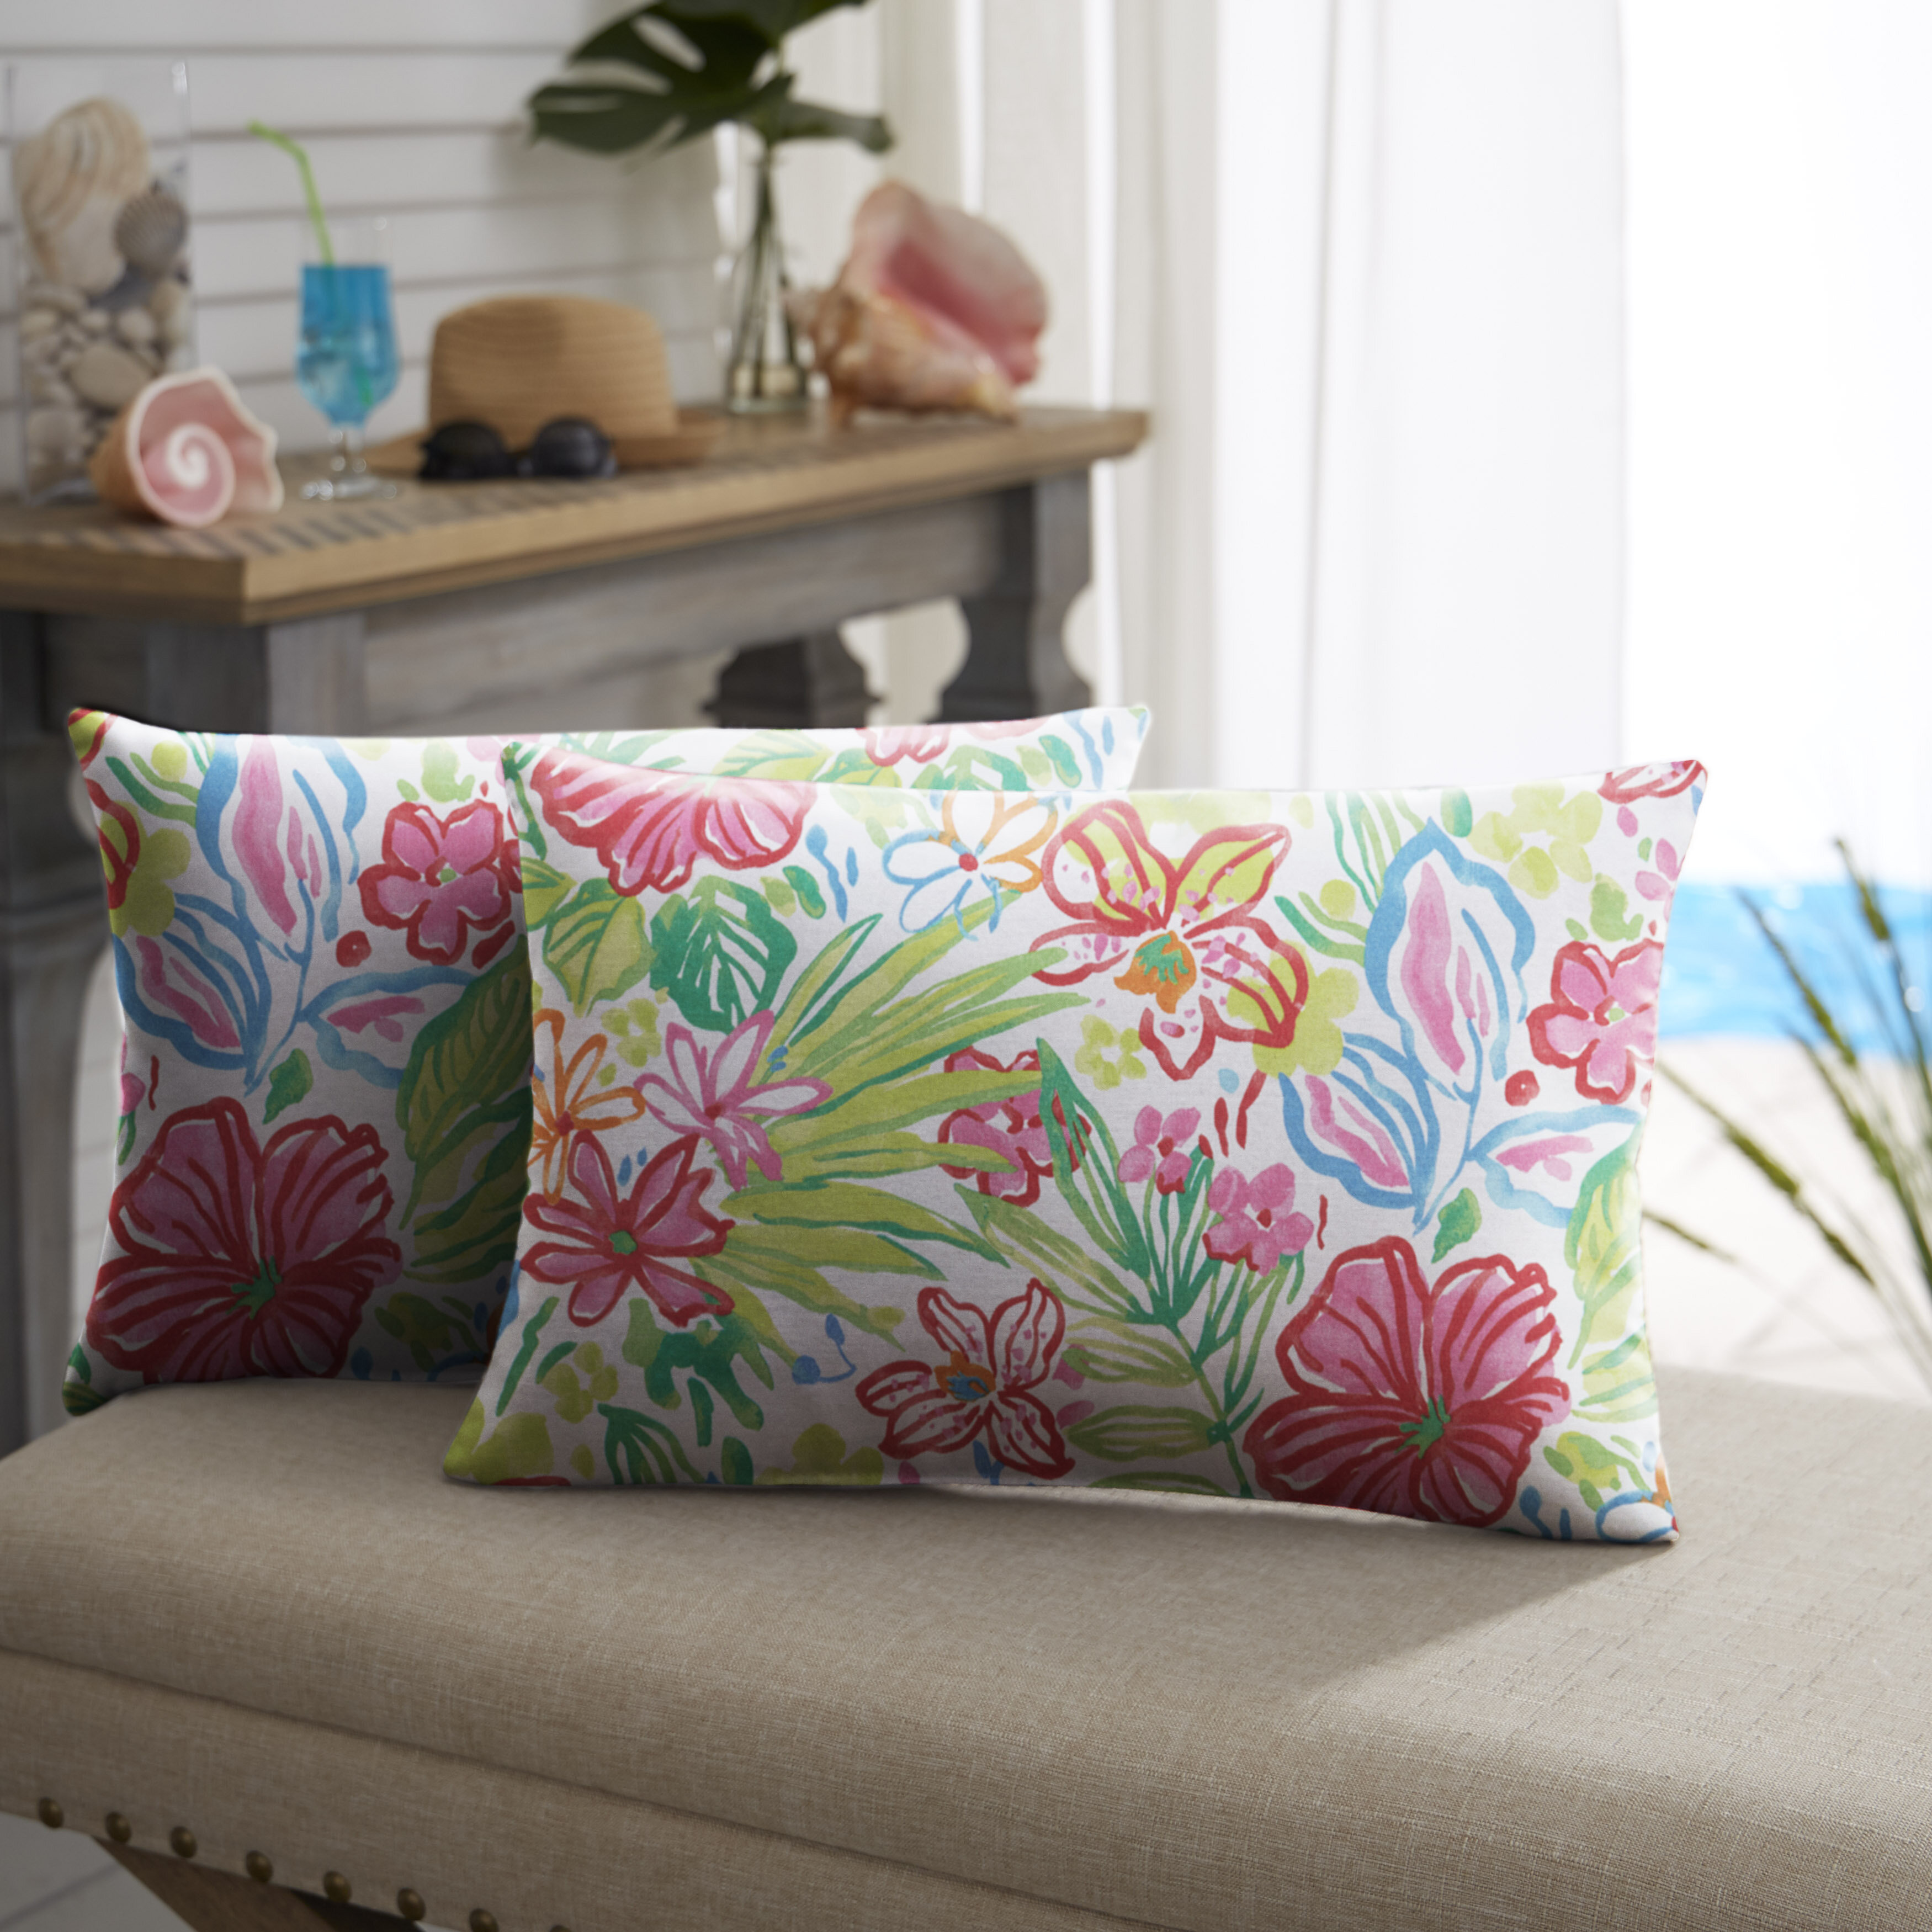 bungalow zutphen blue outdoor scatter shop showy prodigious garden shapely stitch corded river treasures rc outdoordecorative reviews flame striped smart daisy pillow or rose lumbar rectangular geometric pillows